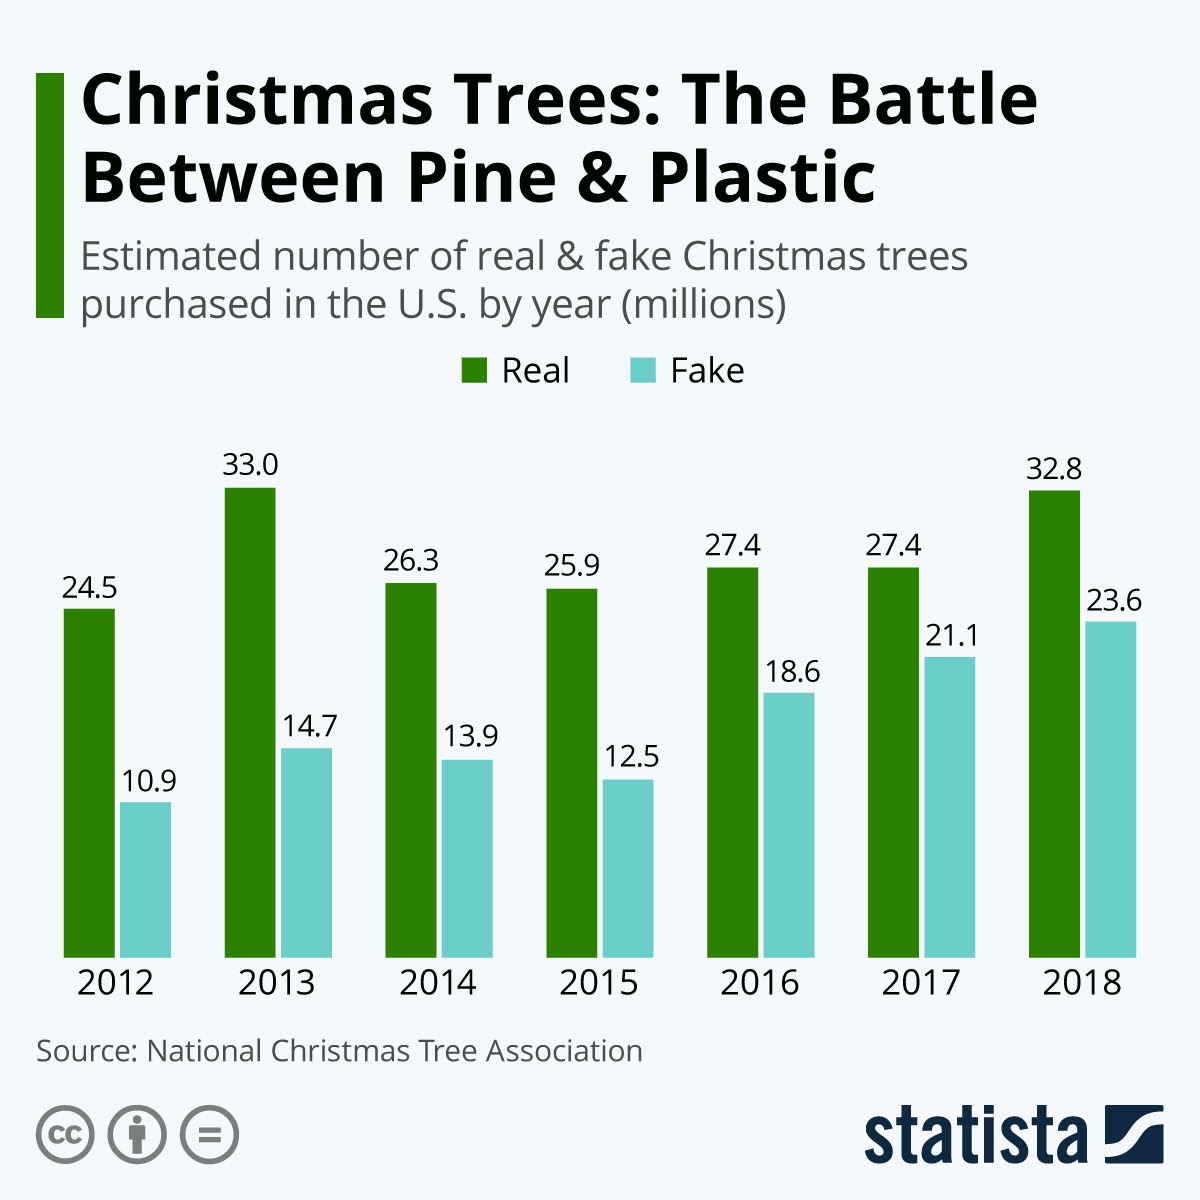 battle-of-pine-and-plastic-christmas-tree-preference-by-the-us-families #infographic